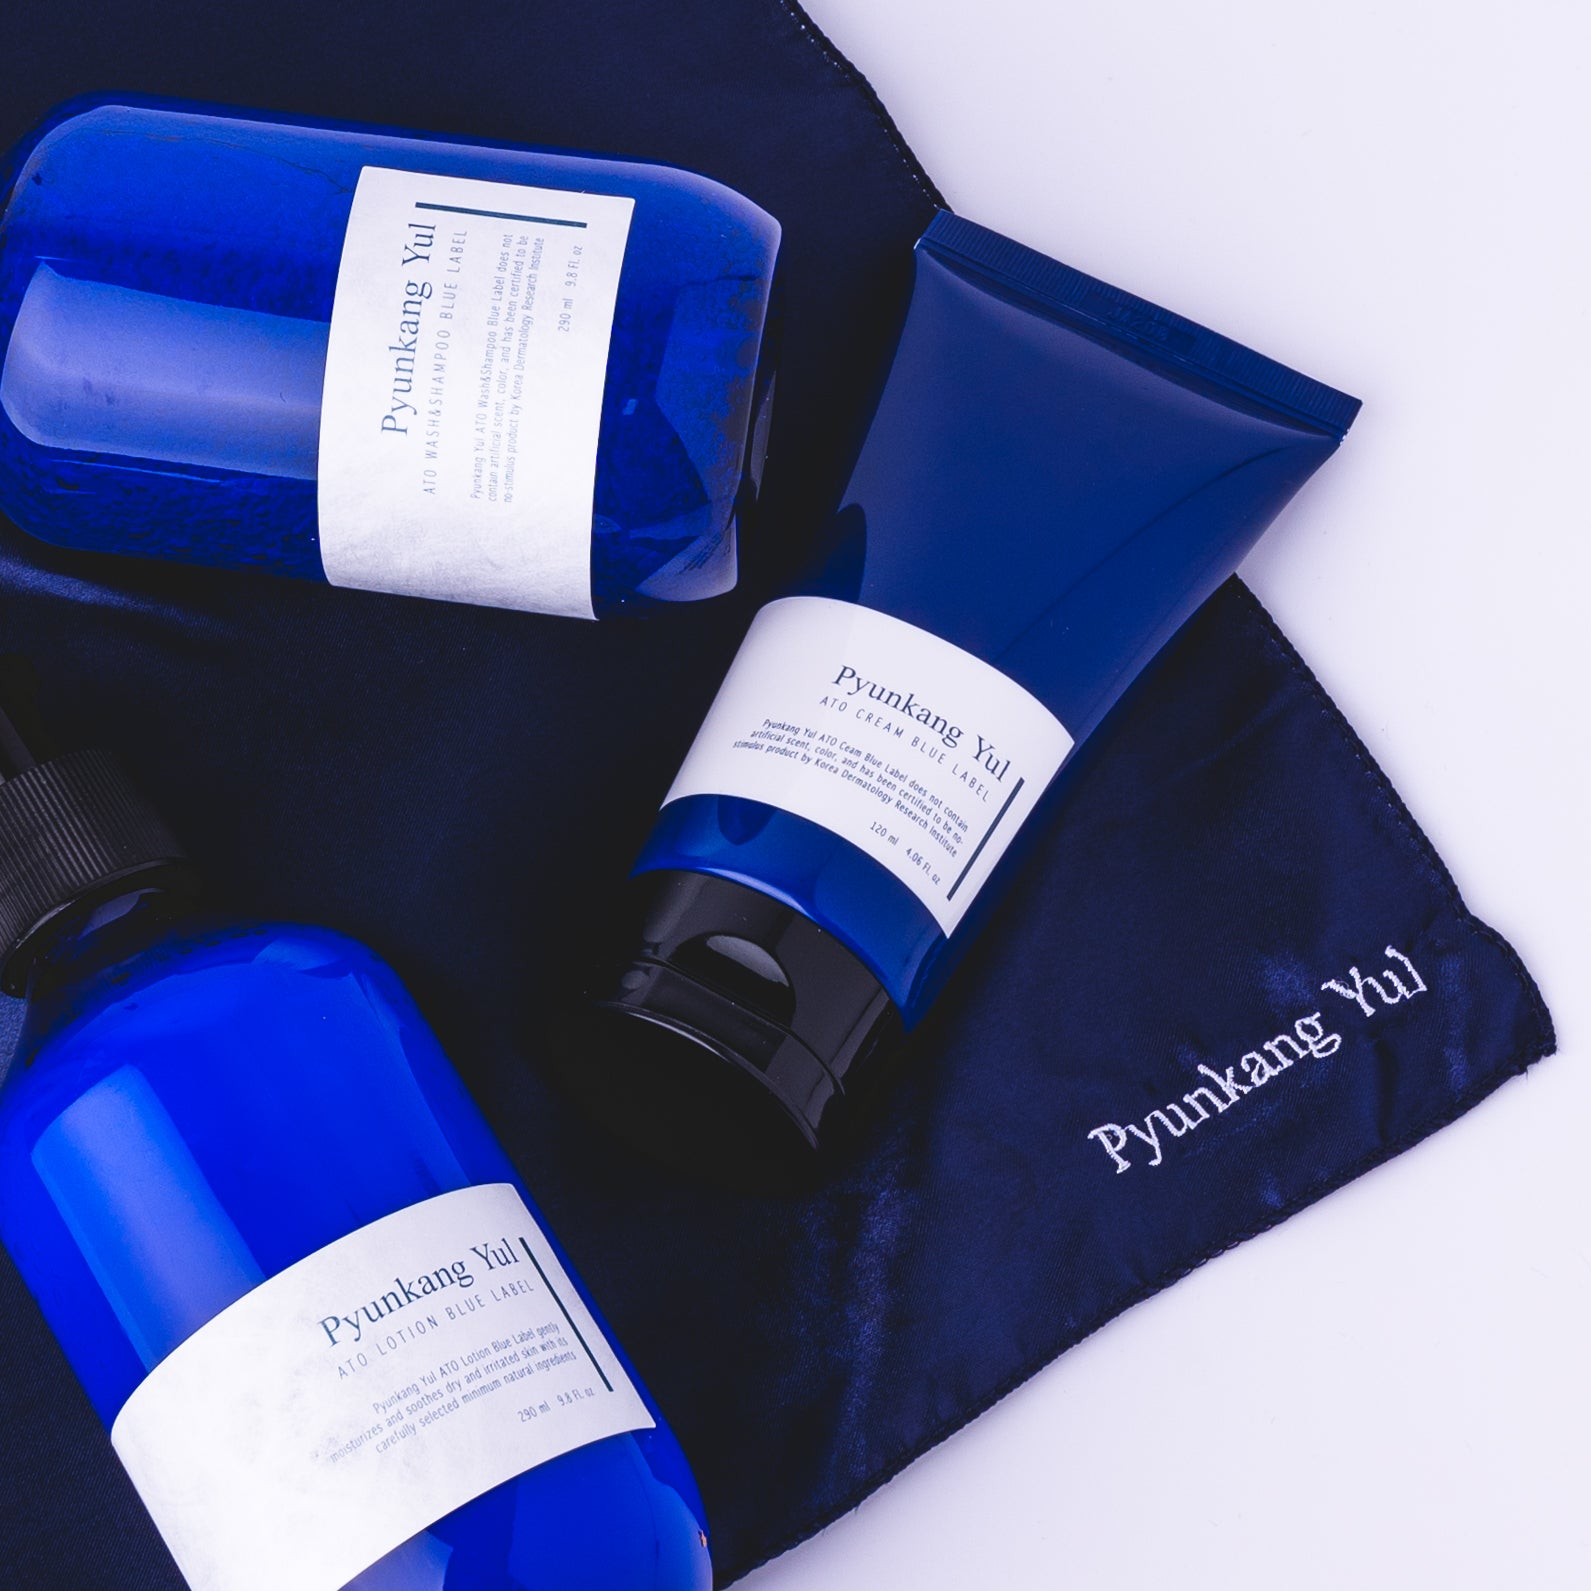 [Pyunkang yul] Blue Label ATO Skincare Set